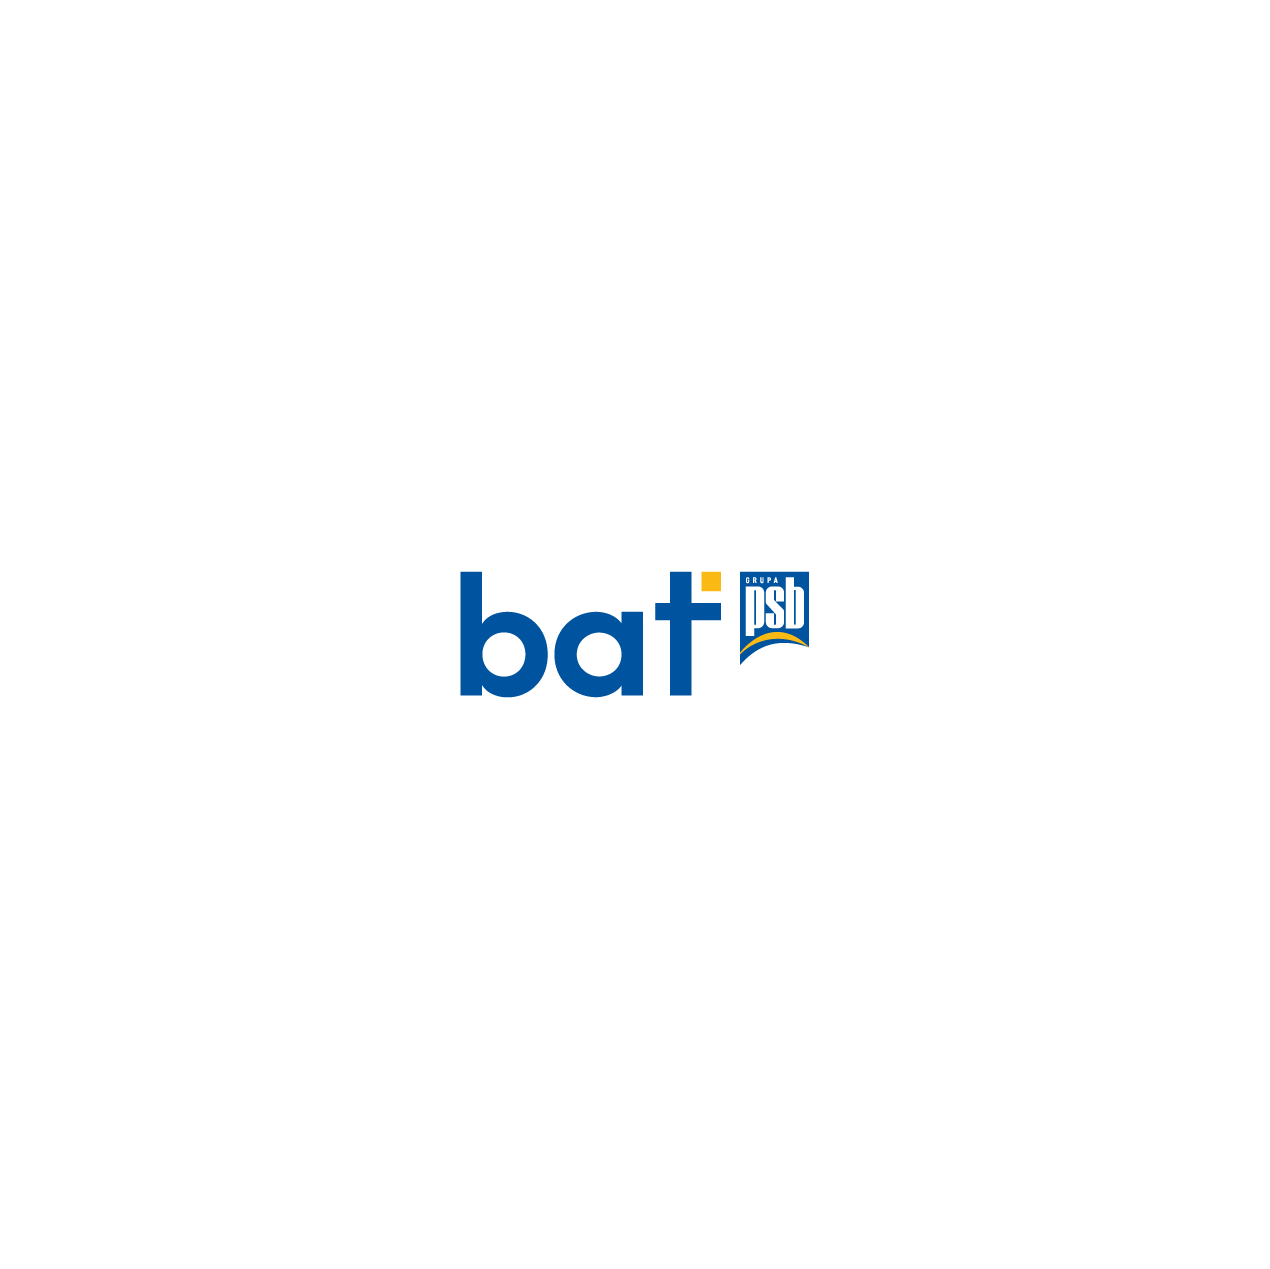 bat logo project